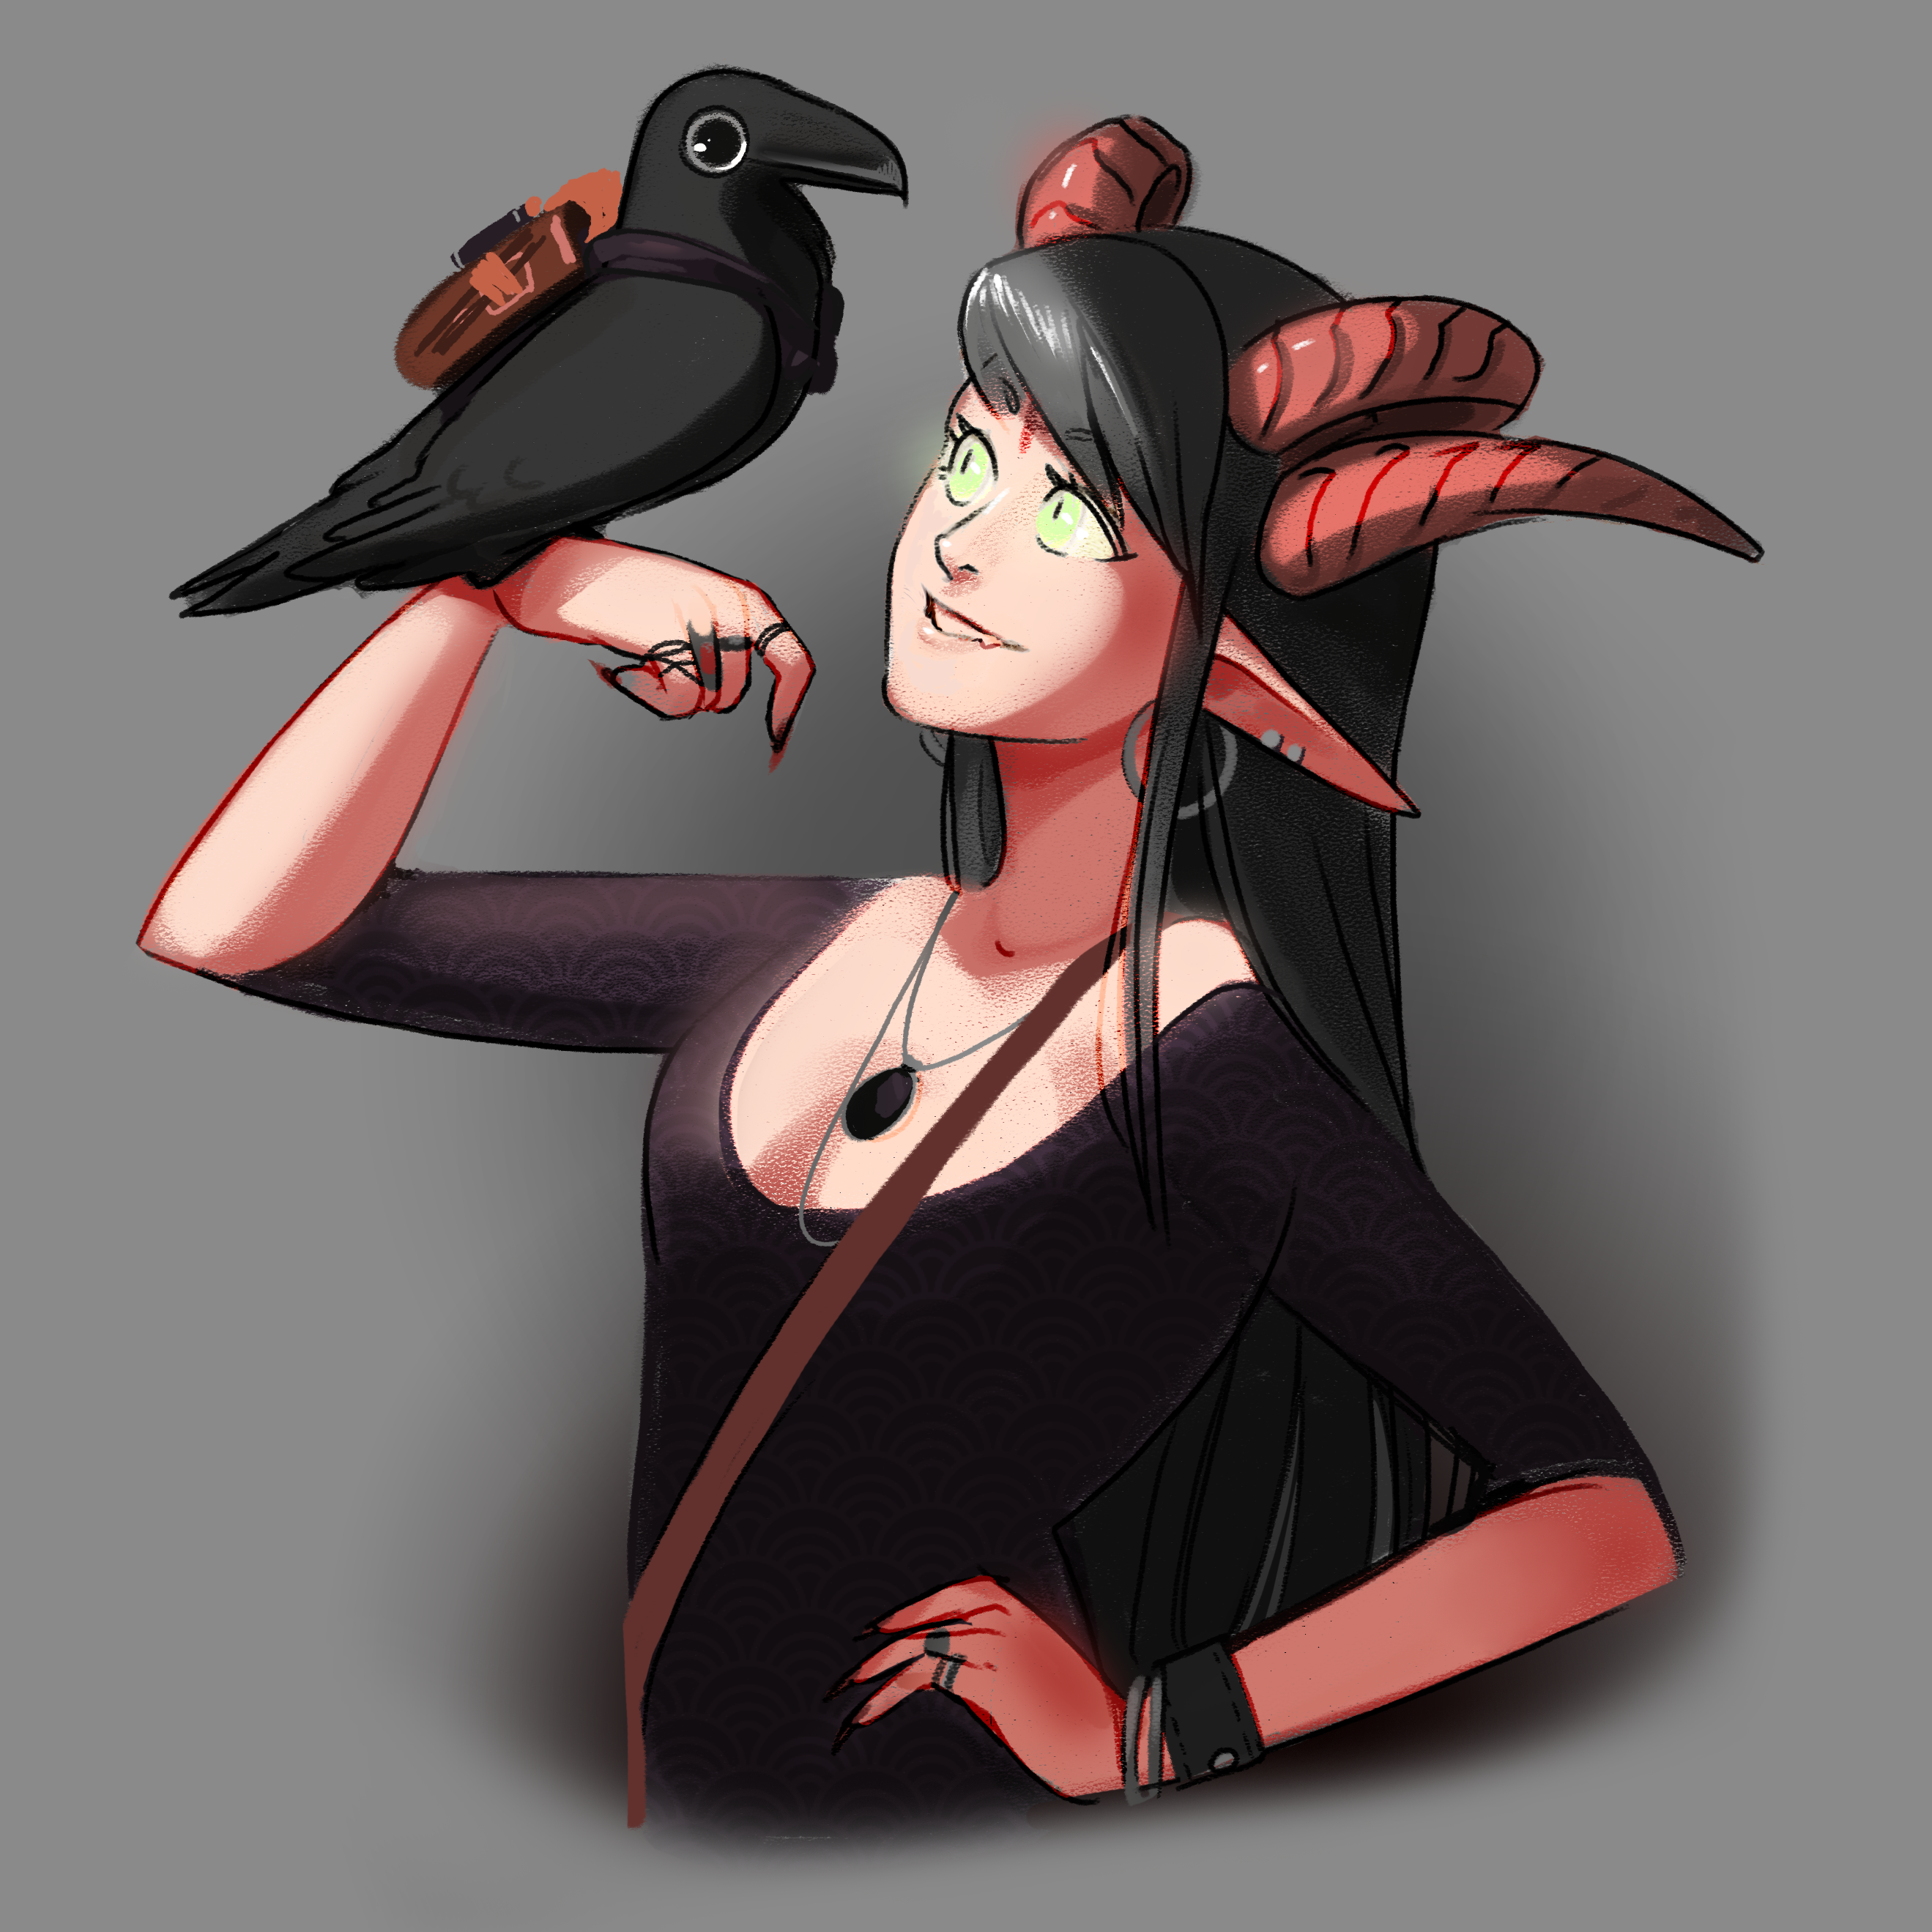 Rin and Edgar - A Witch and her Familiar